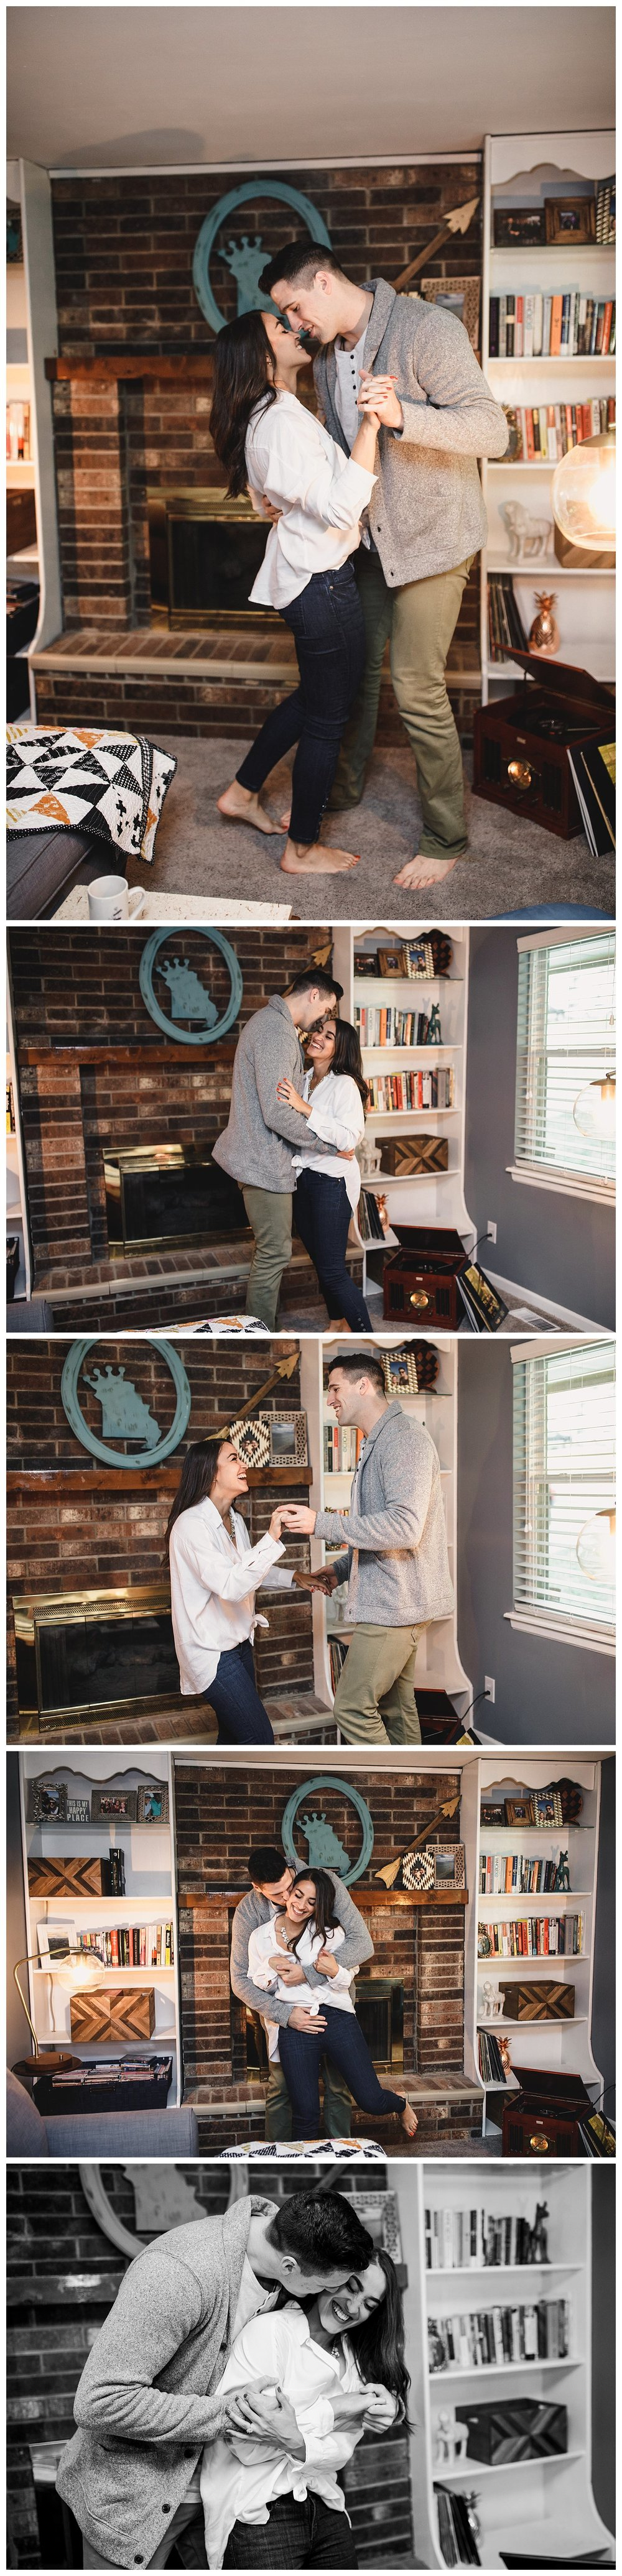 Kansas_City_Wedding_Photographer_Engagement_Kelsey_Diane_Photography_Midwest_Traveling_In_home_engagement_Session_Cassie_Austin_Parkville_Missouri_0880.jpg